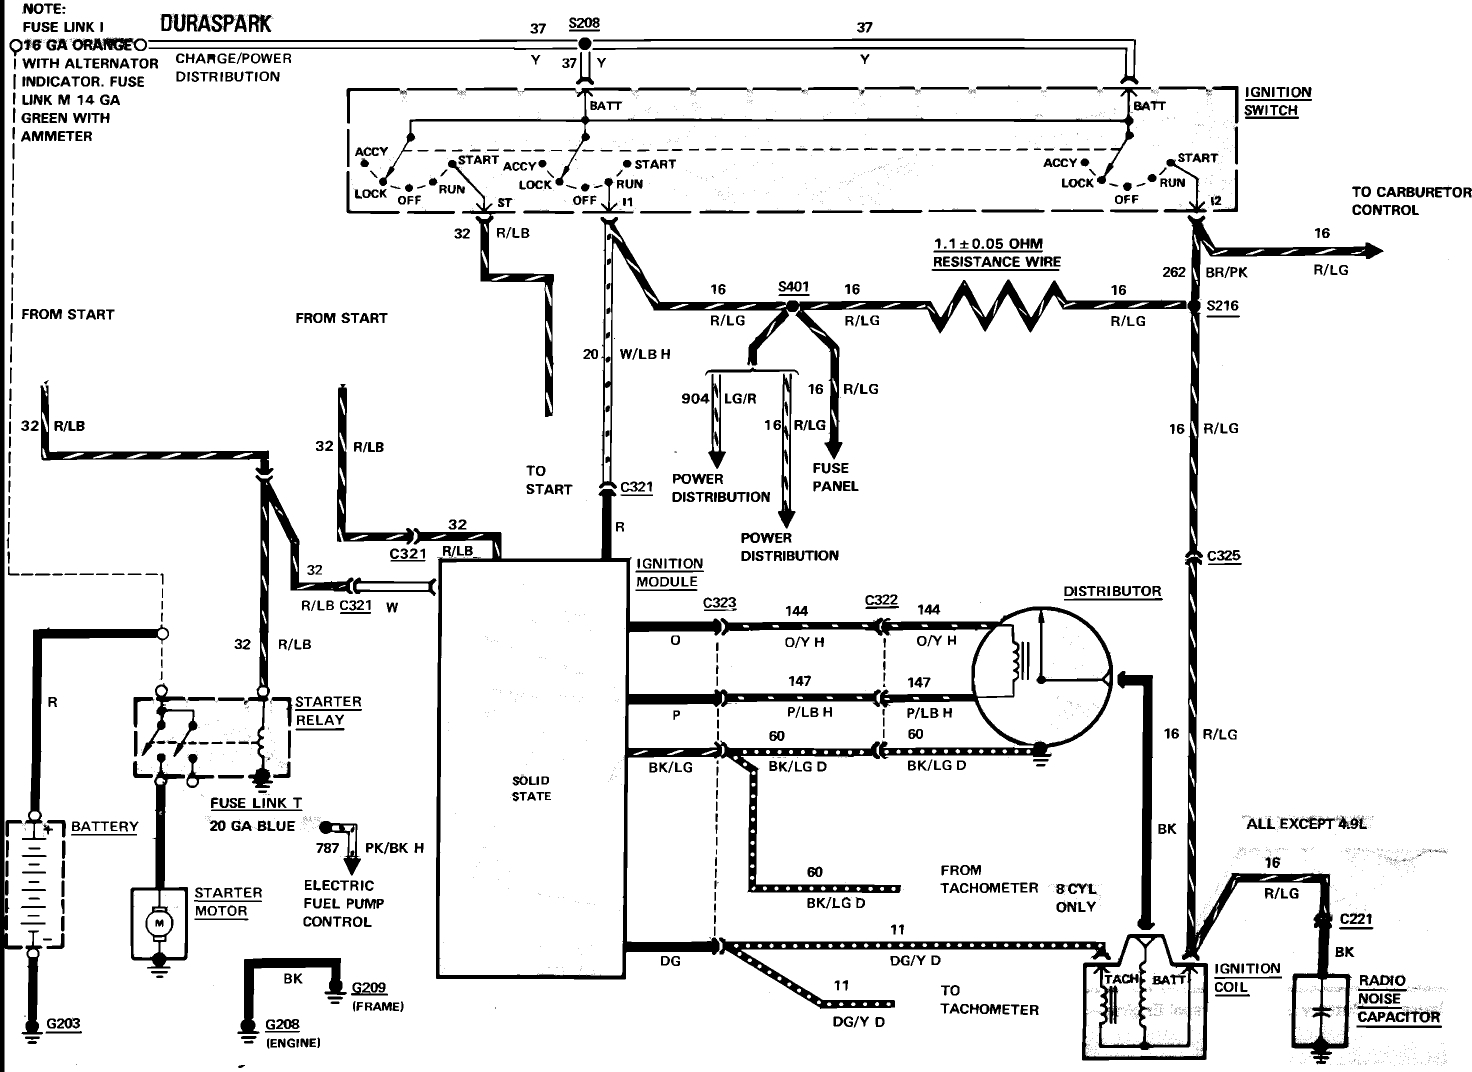 2009 mustang blower motor wiring diagram